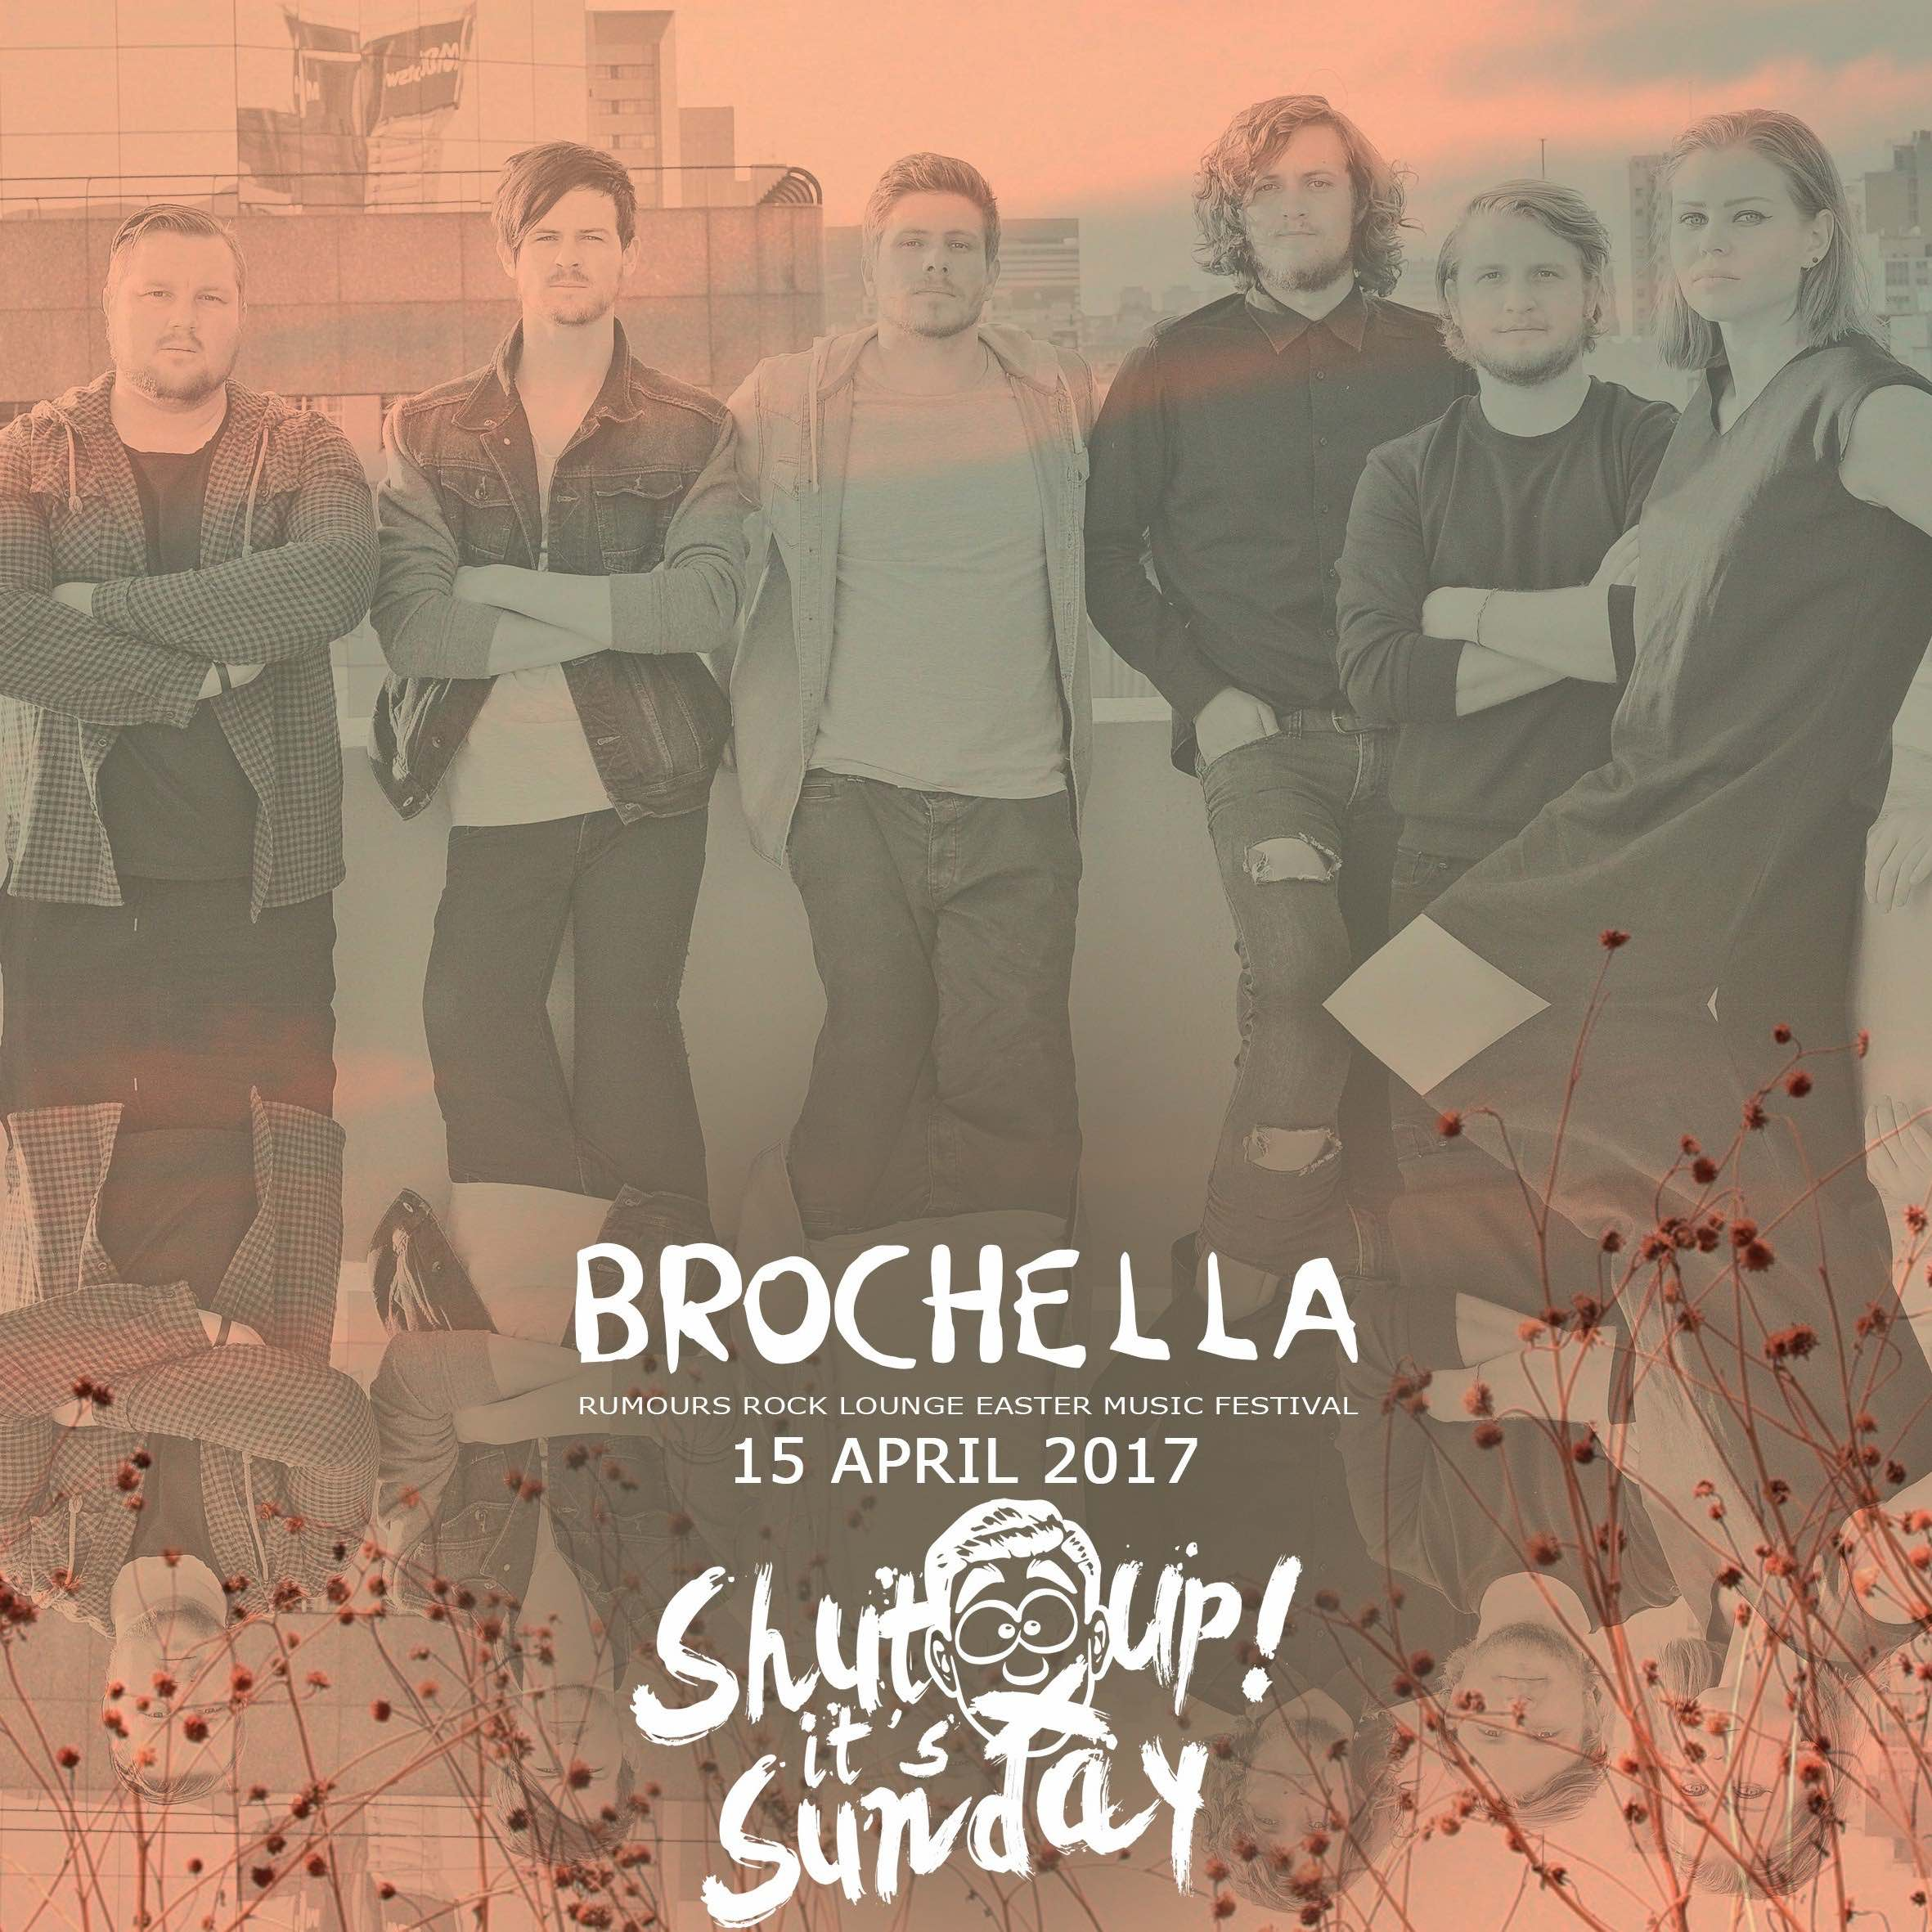 We interview ShutUp! It's Sunday about Brochella Festival